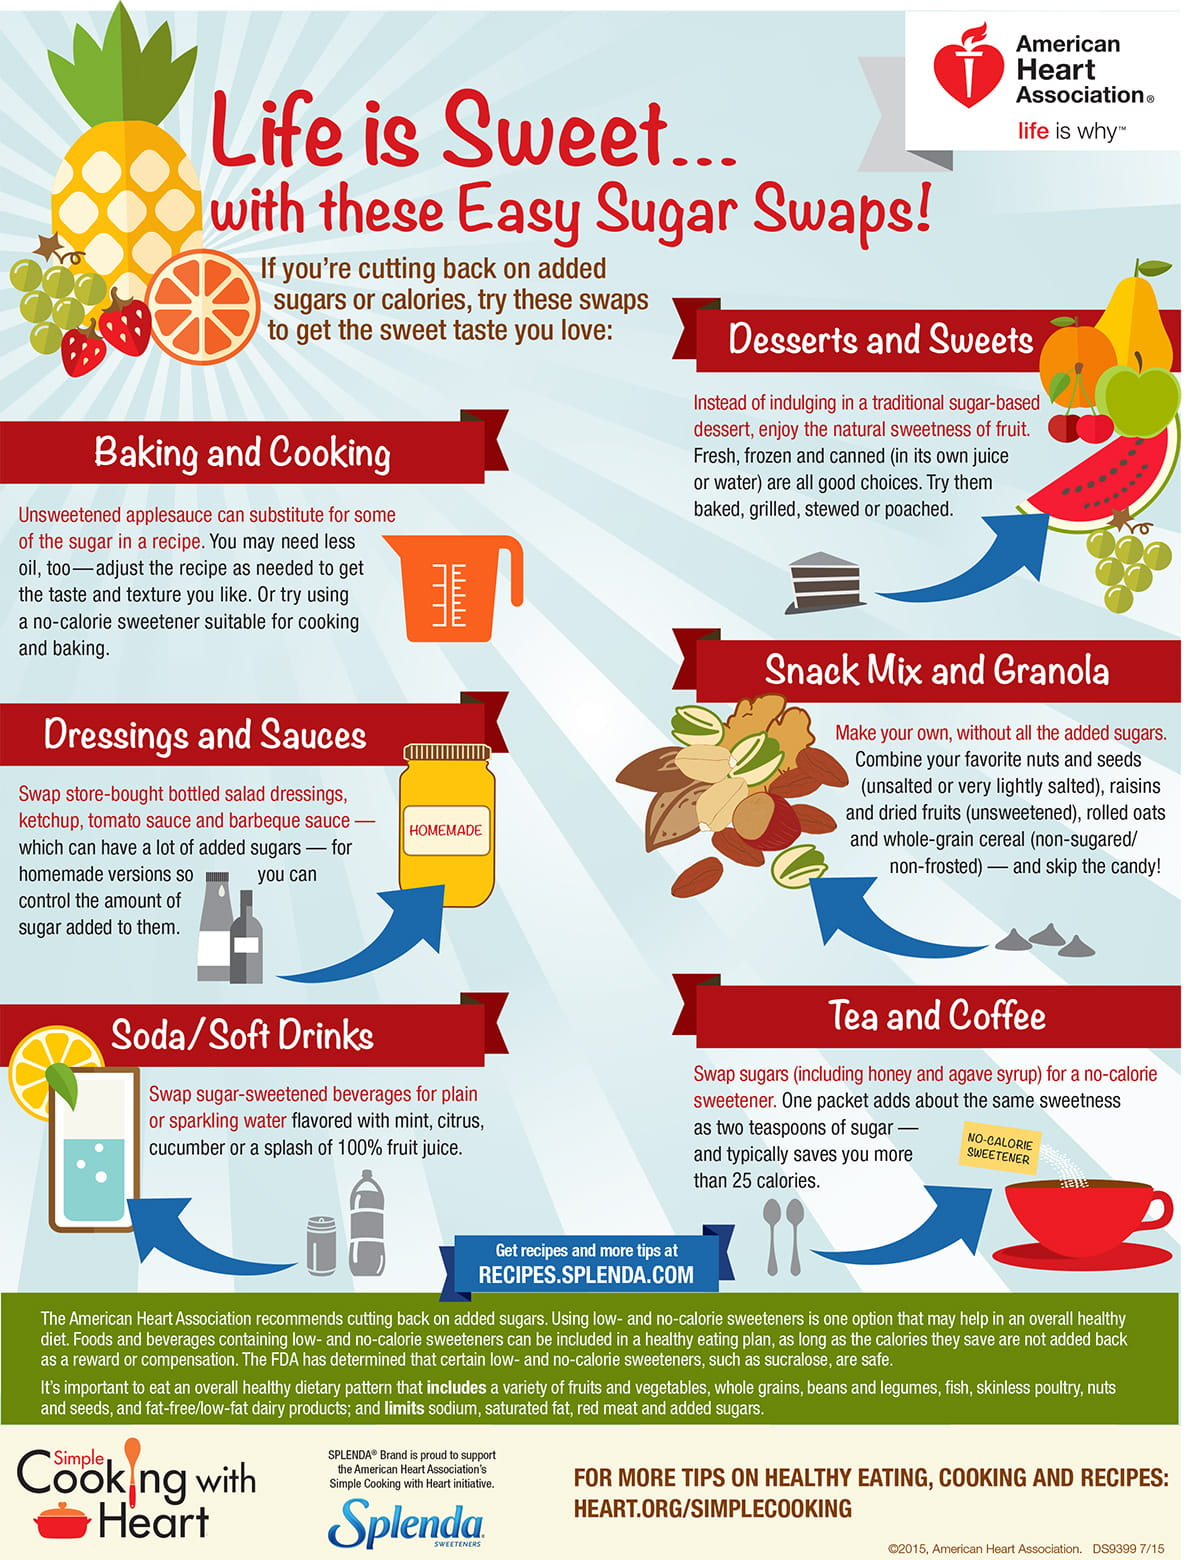 Life is Sweet with thee easy sugar swaps